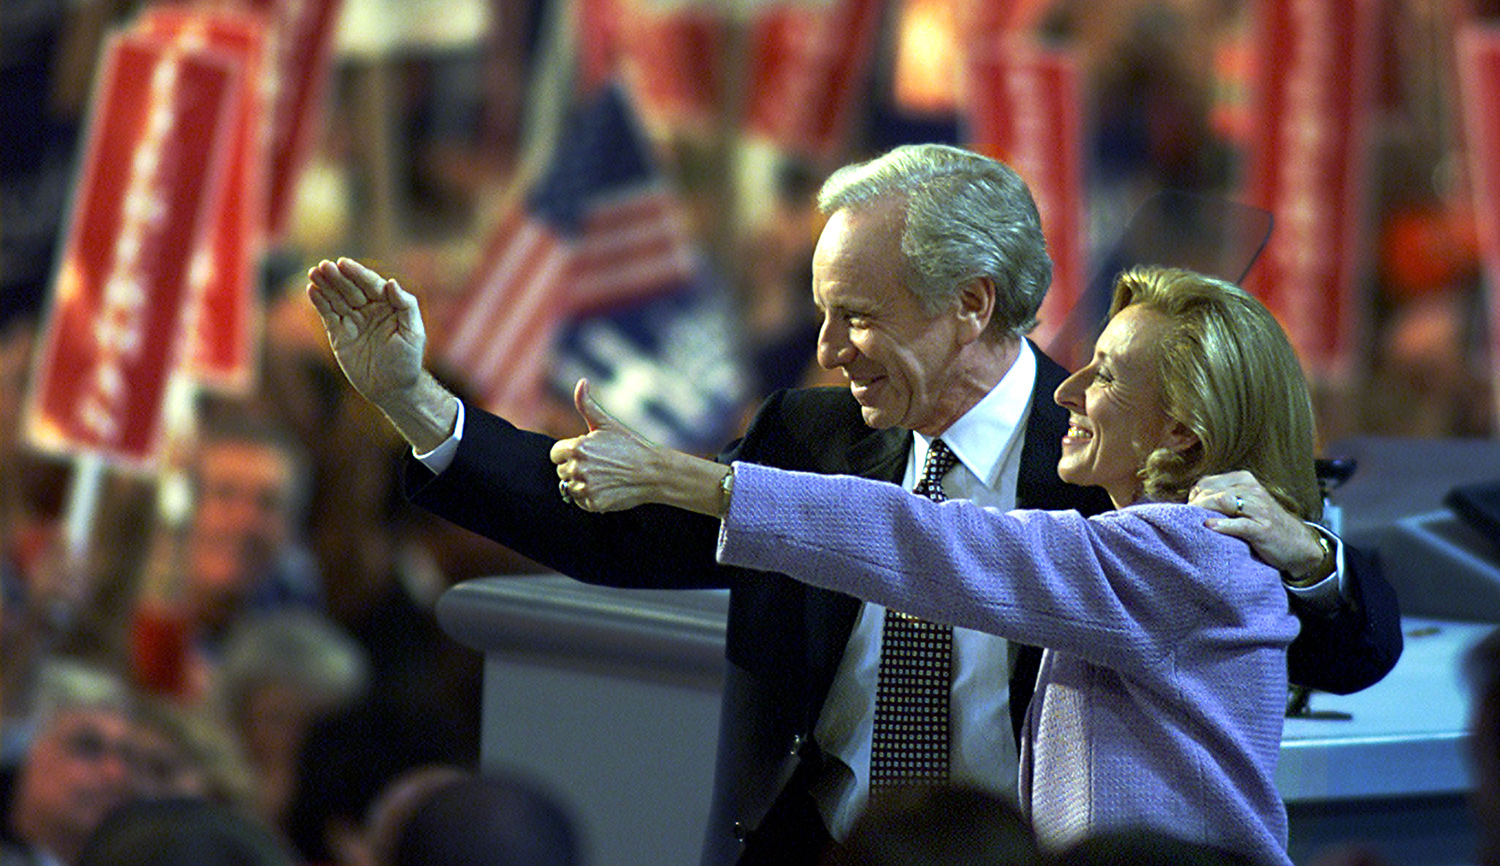 Vice-presidential candidate Joe Lieberman and his wife Hadassah wave to delegates at the Democratic National Convention in Los Angeles on August 16, 2000. Mark Wilson/Newsmakers.